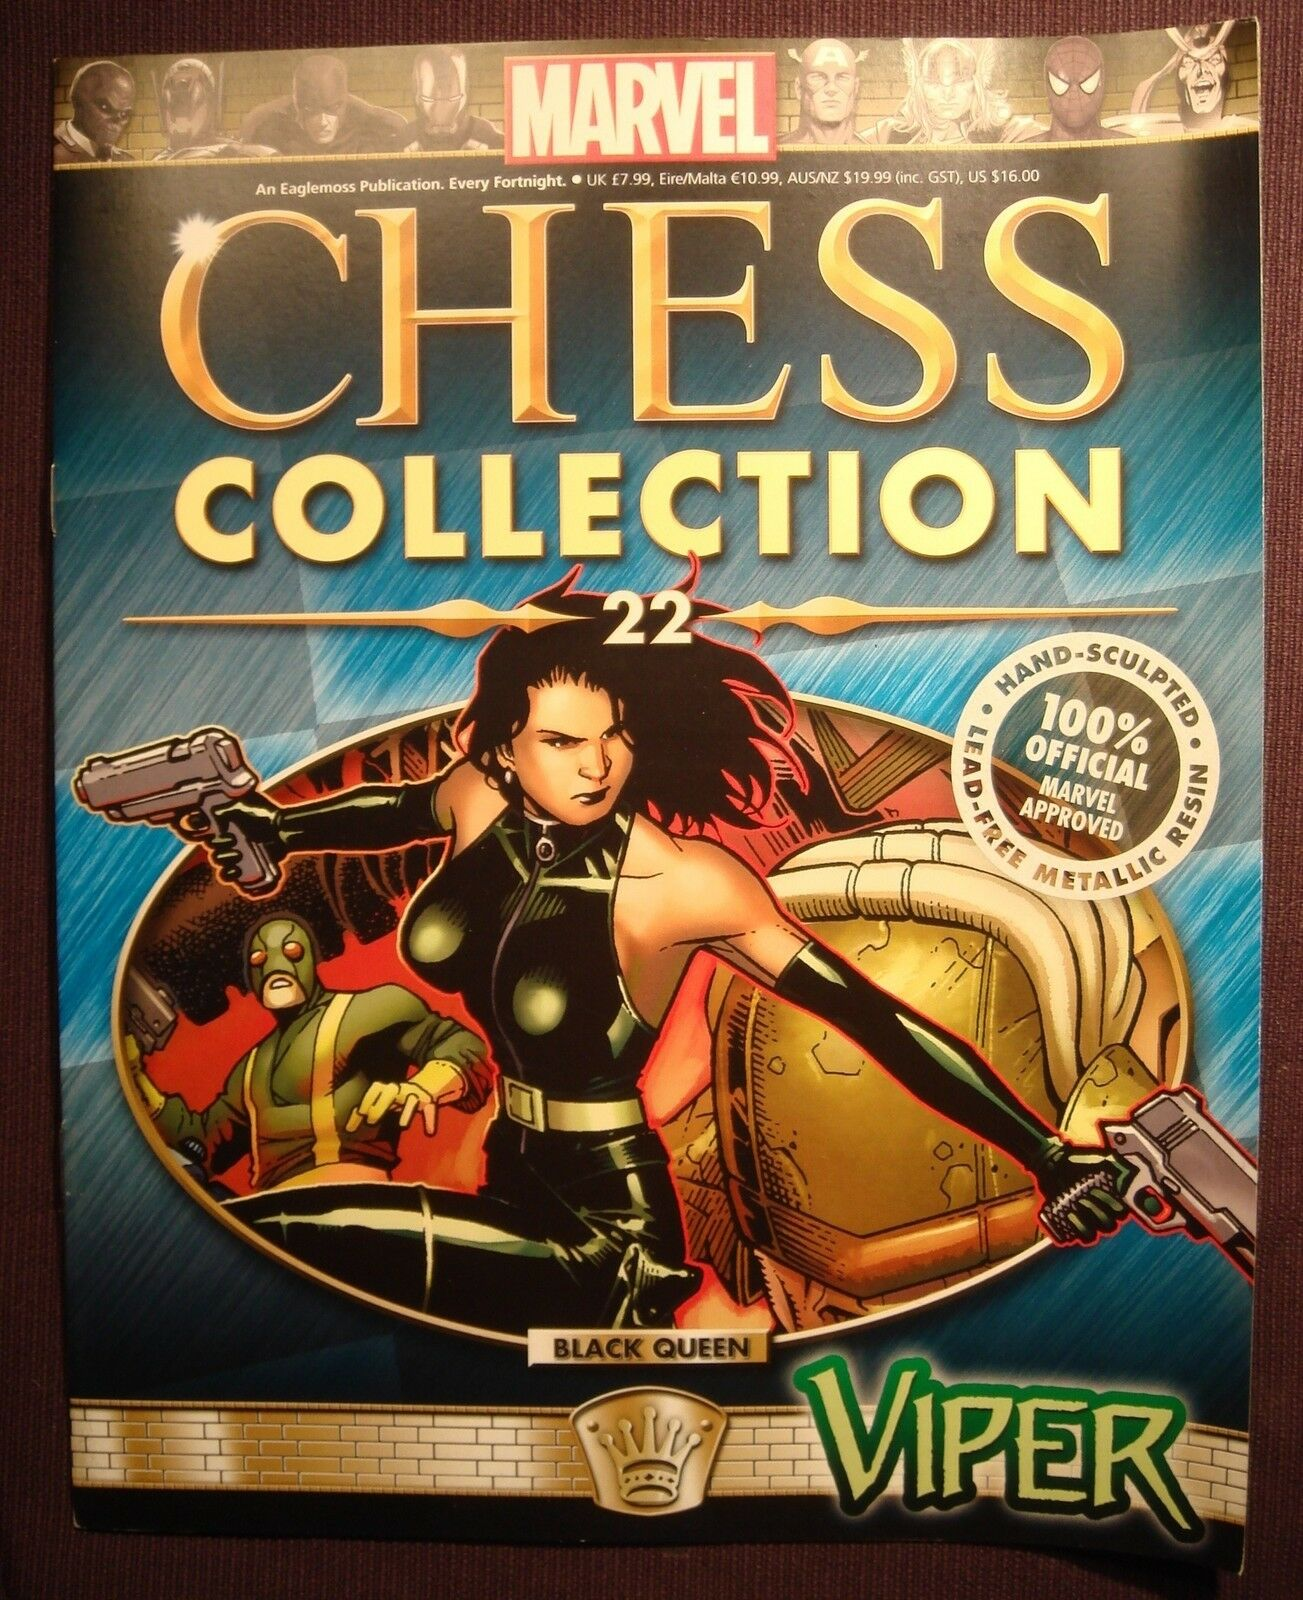 Eaglemoss Marvel Chess Collection Magazine Iusse  22 Viper Magazine Collection Only No Figure abf70c